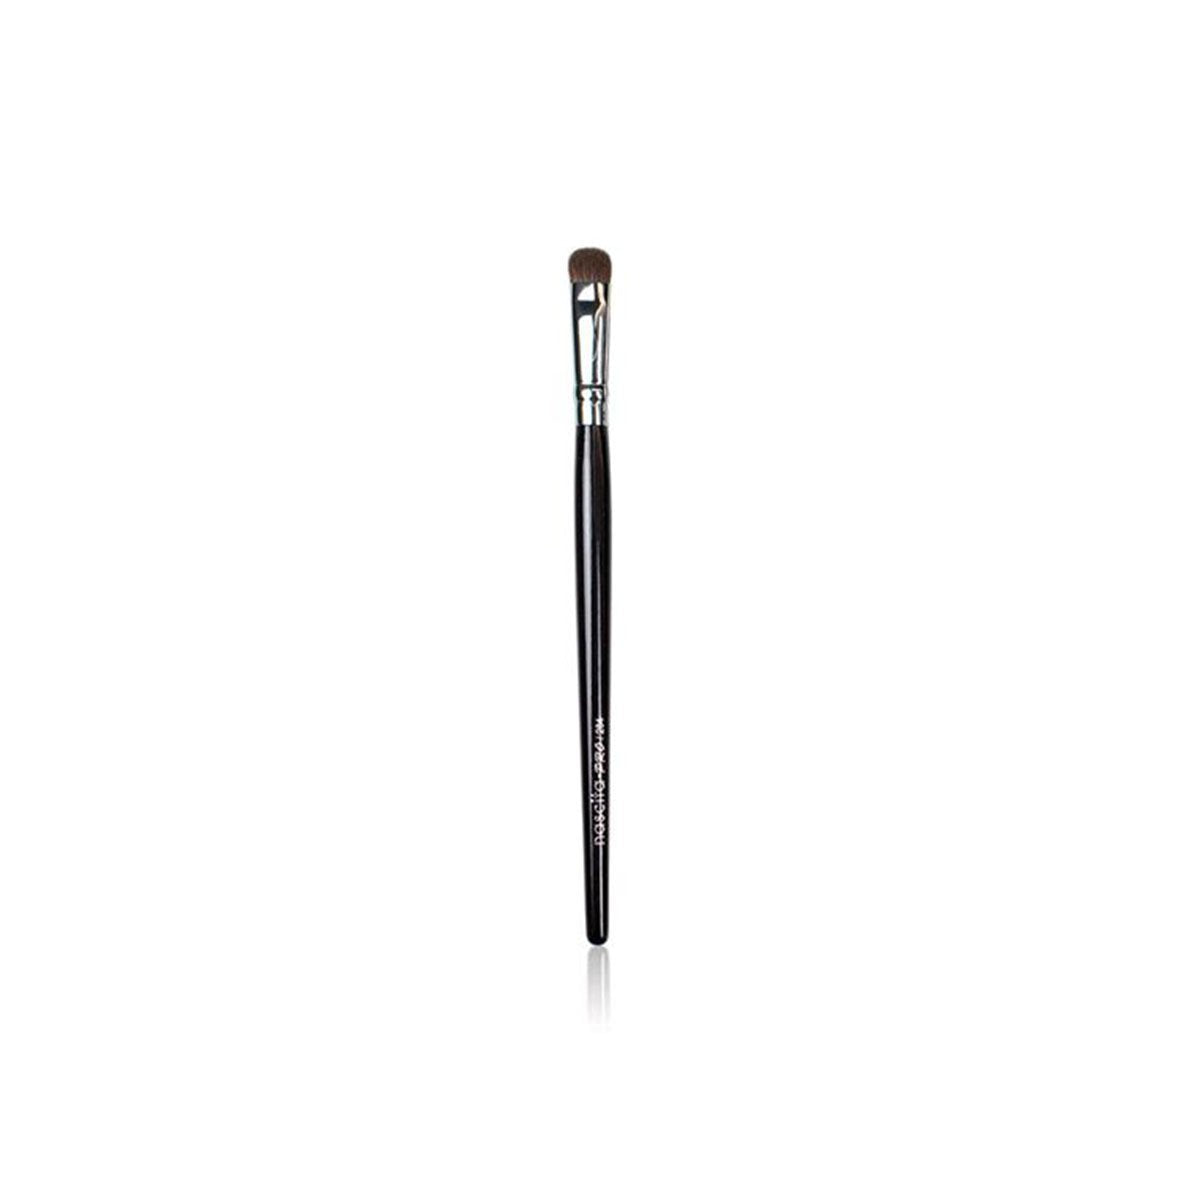 Nascita Pro Brush - Blending